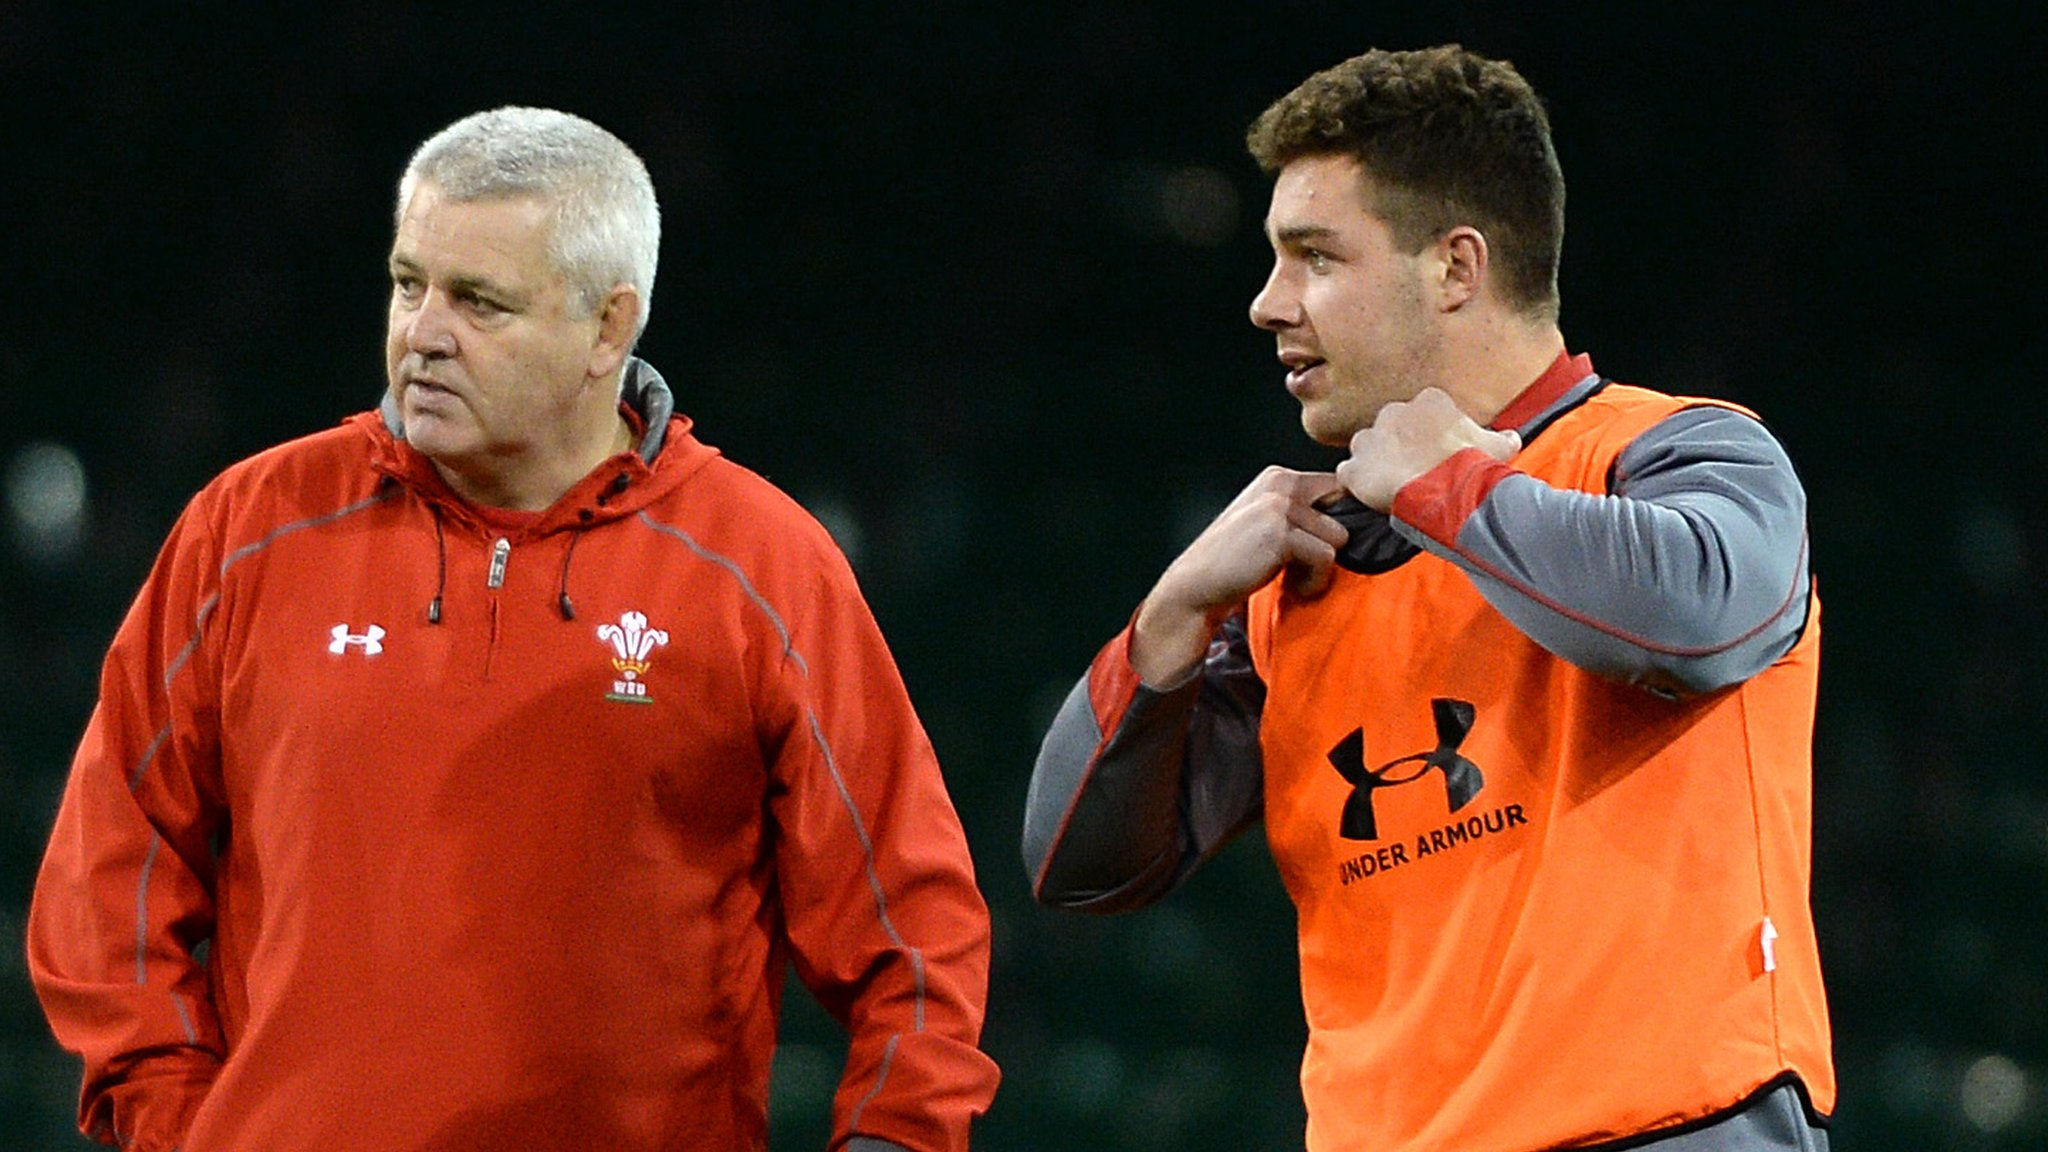 Gatland hopes for 'common sense' over Webb's Wales eligibility